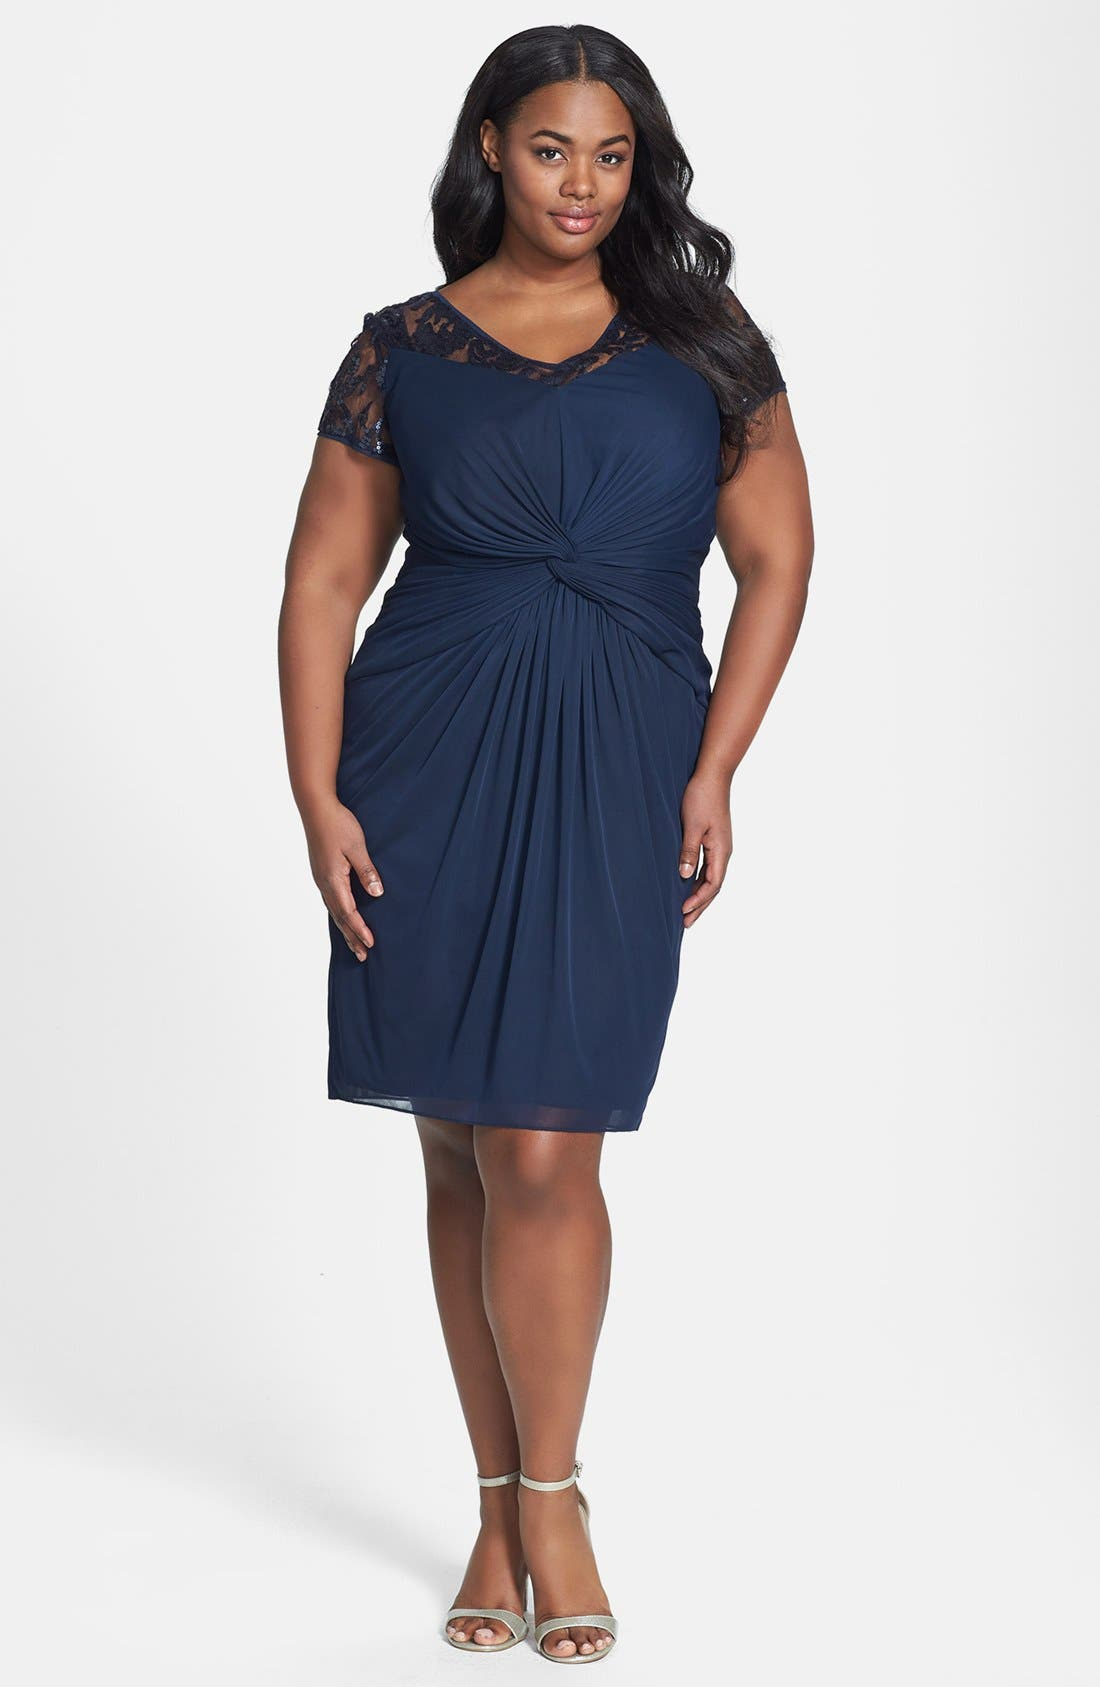 Alternate Image 1 Selected - Adrianna Papell Embellished Lace Yoke Knotted Tulle Dress (Plus Size)